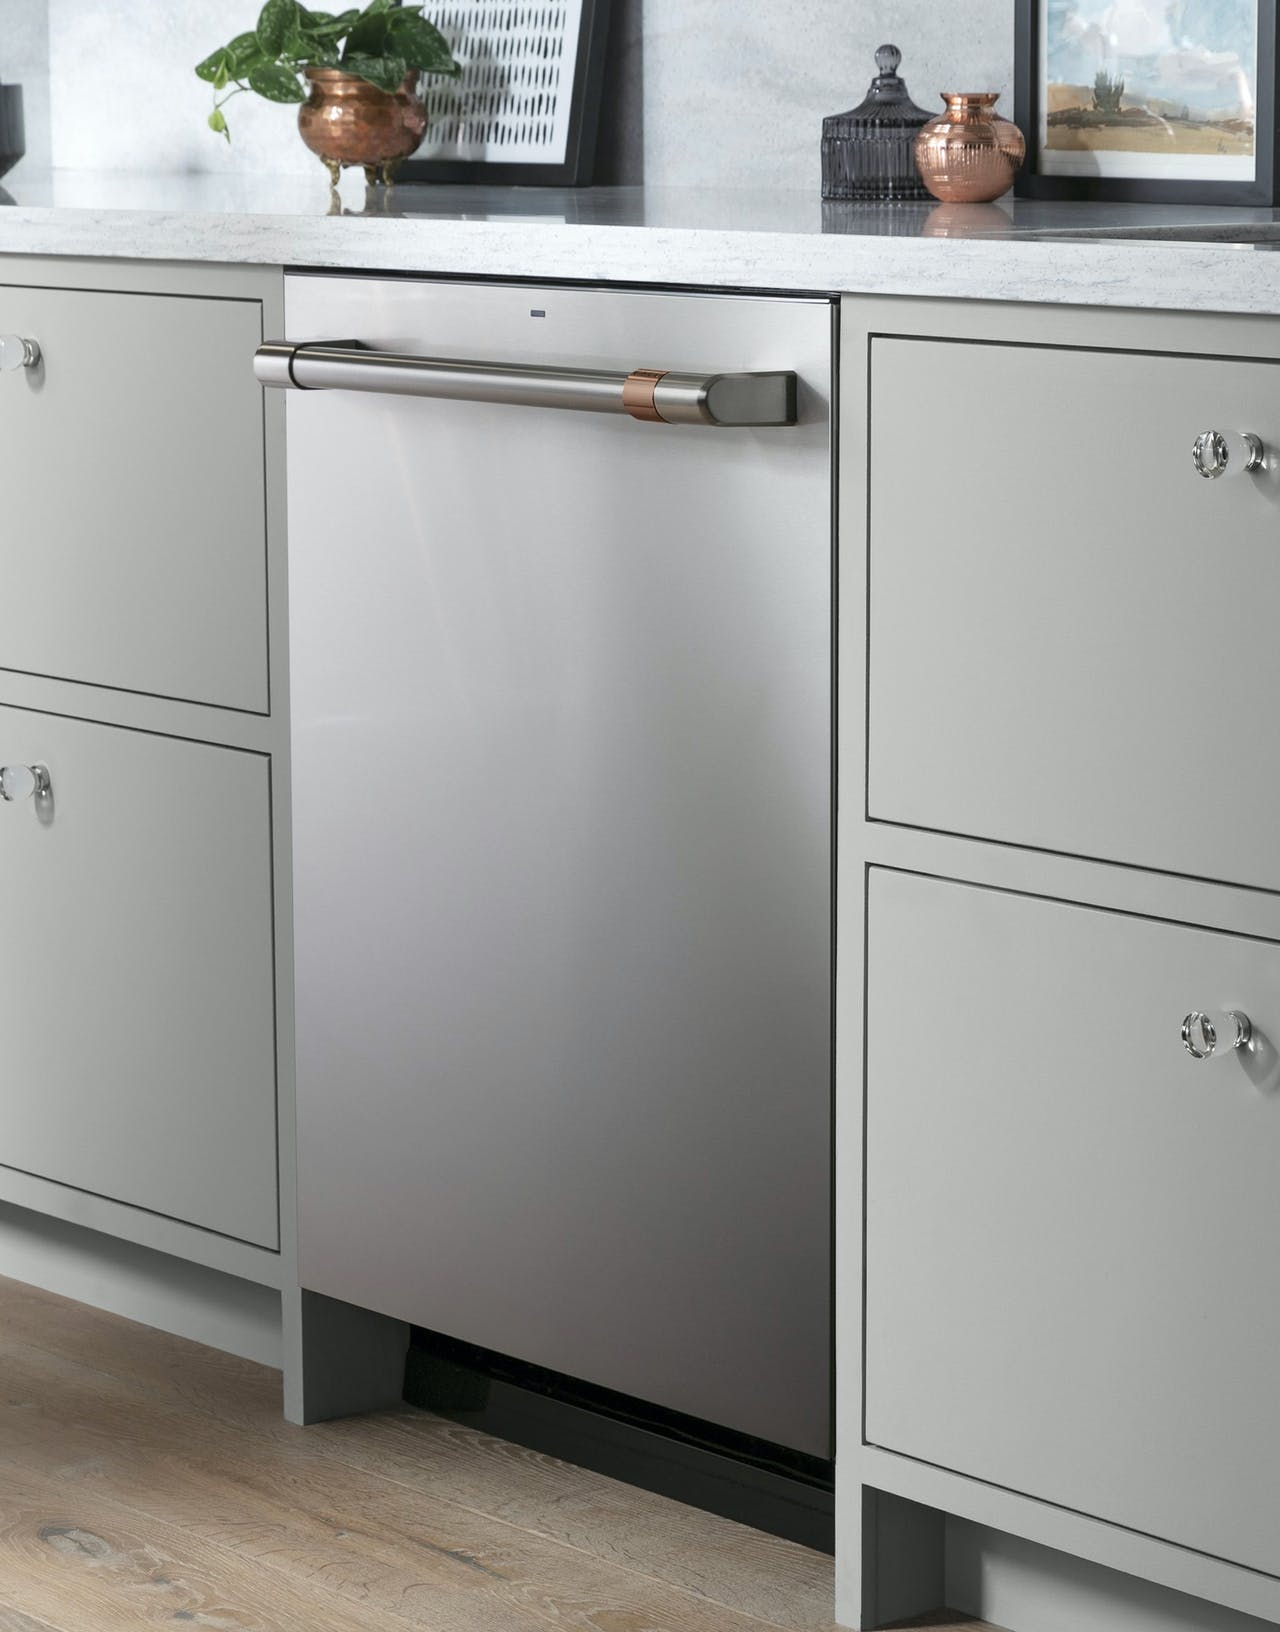 stainless dishwasher with brushed stainless hardware